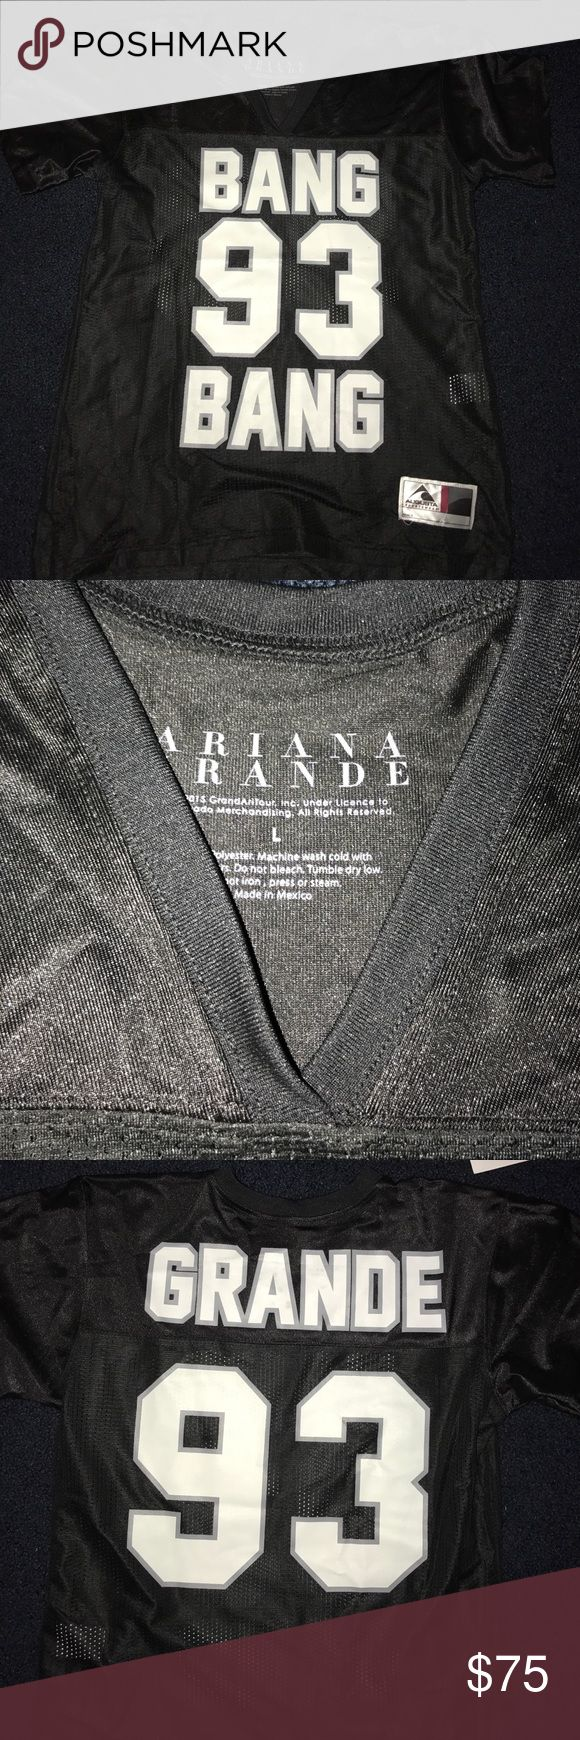 Ariana Grande Jersey Bang Bang Honeymoon Tour NEW Brand new item purchased from the Honeymoon tour- never worn!!! Size unisex large, would also fit anyone who's a medium!! GRANDE 93!! Real jersey material/100% authentic and official. I am selling for slightly less than what I purchased it for!!! Take it home today (: Bravado Tops